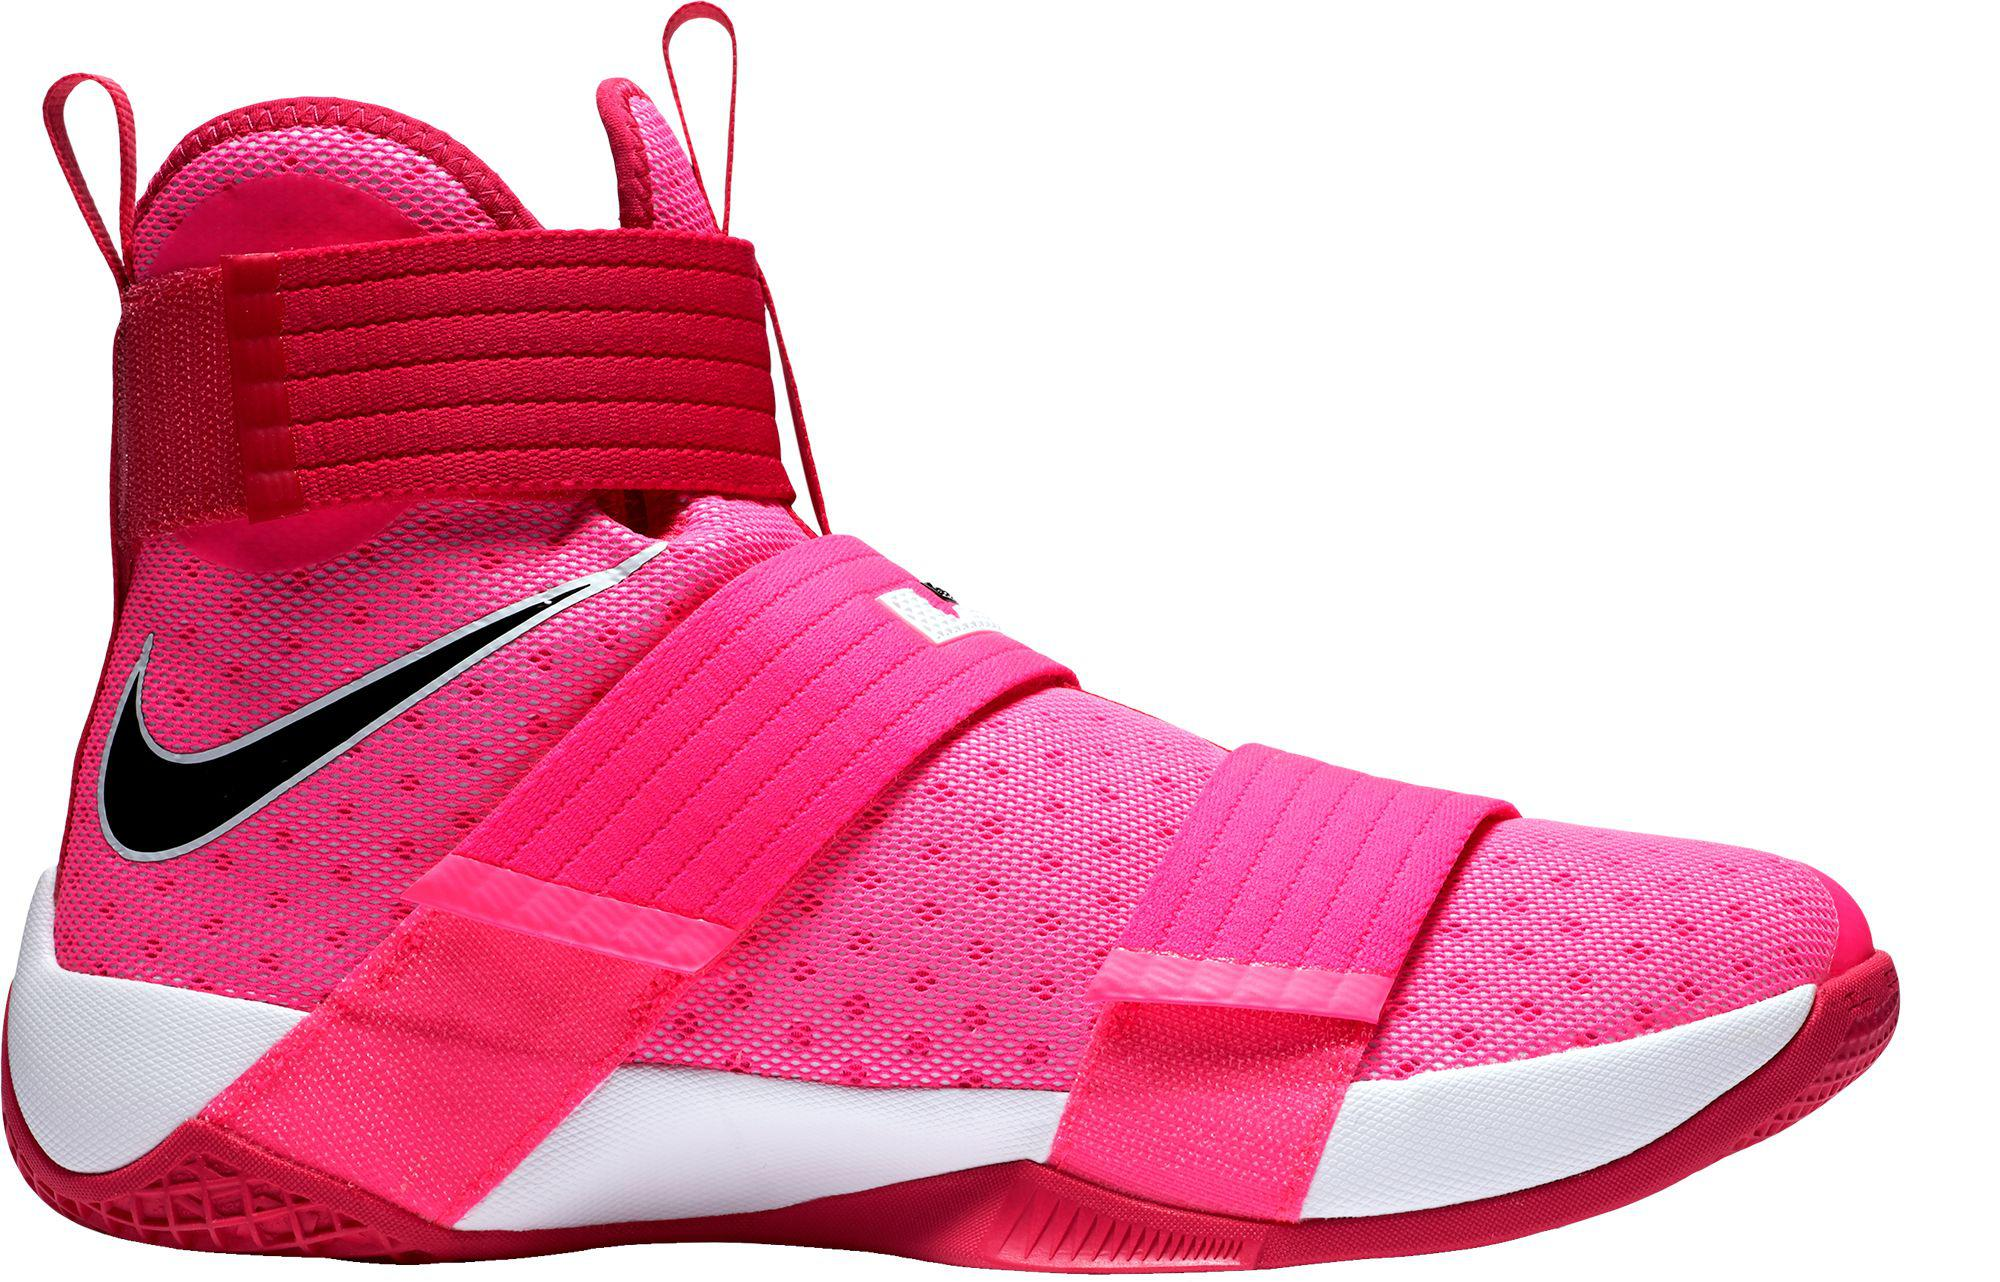 low priced b3e1f c2f87 Nike Pink Zoom Lebron Soldier X Basketball Shoes for men